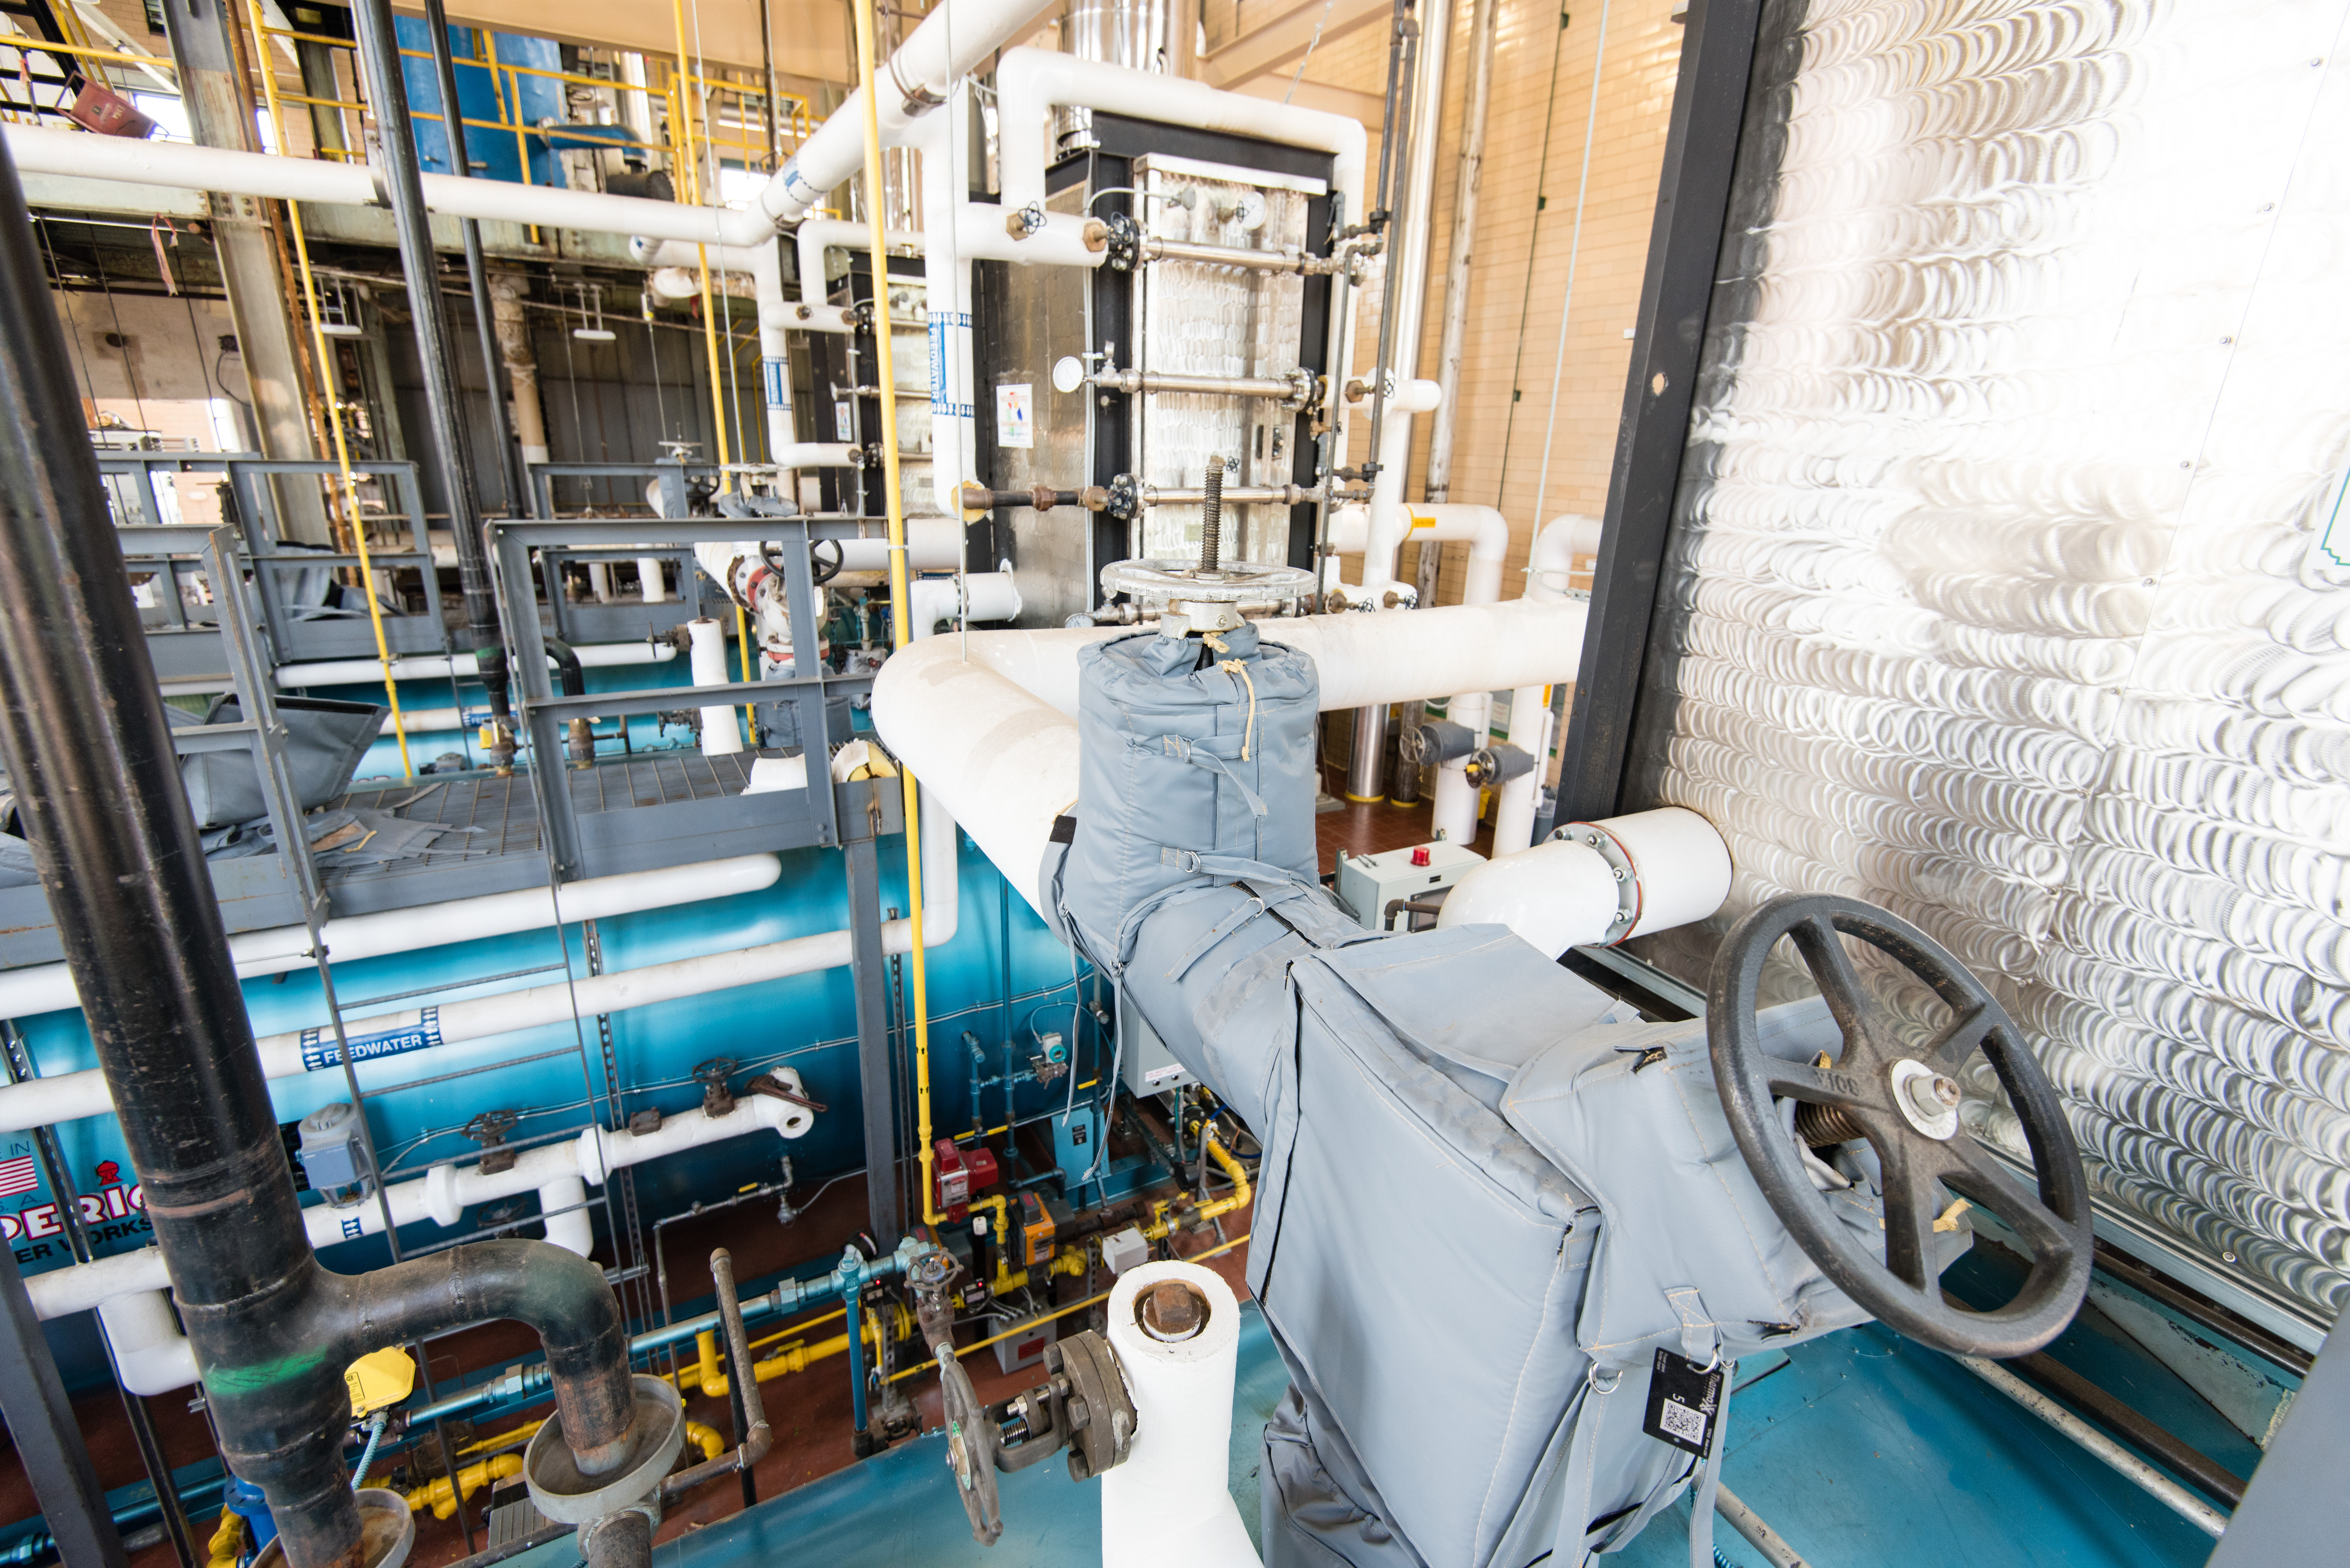 Asset Management of Steam Traps and Beyond